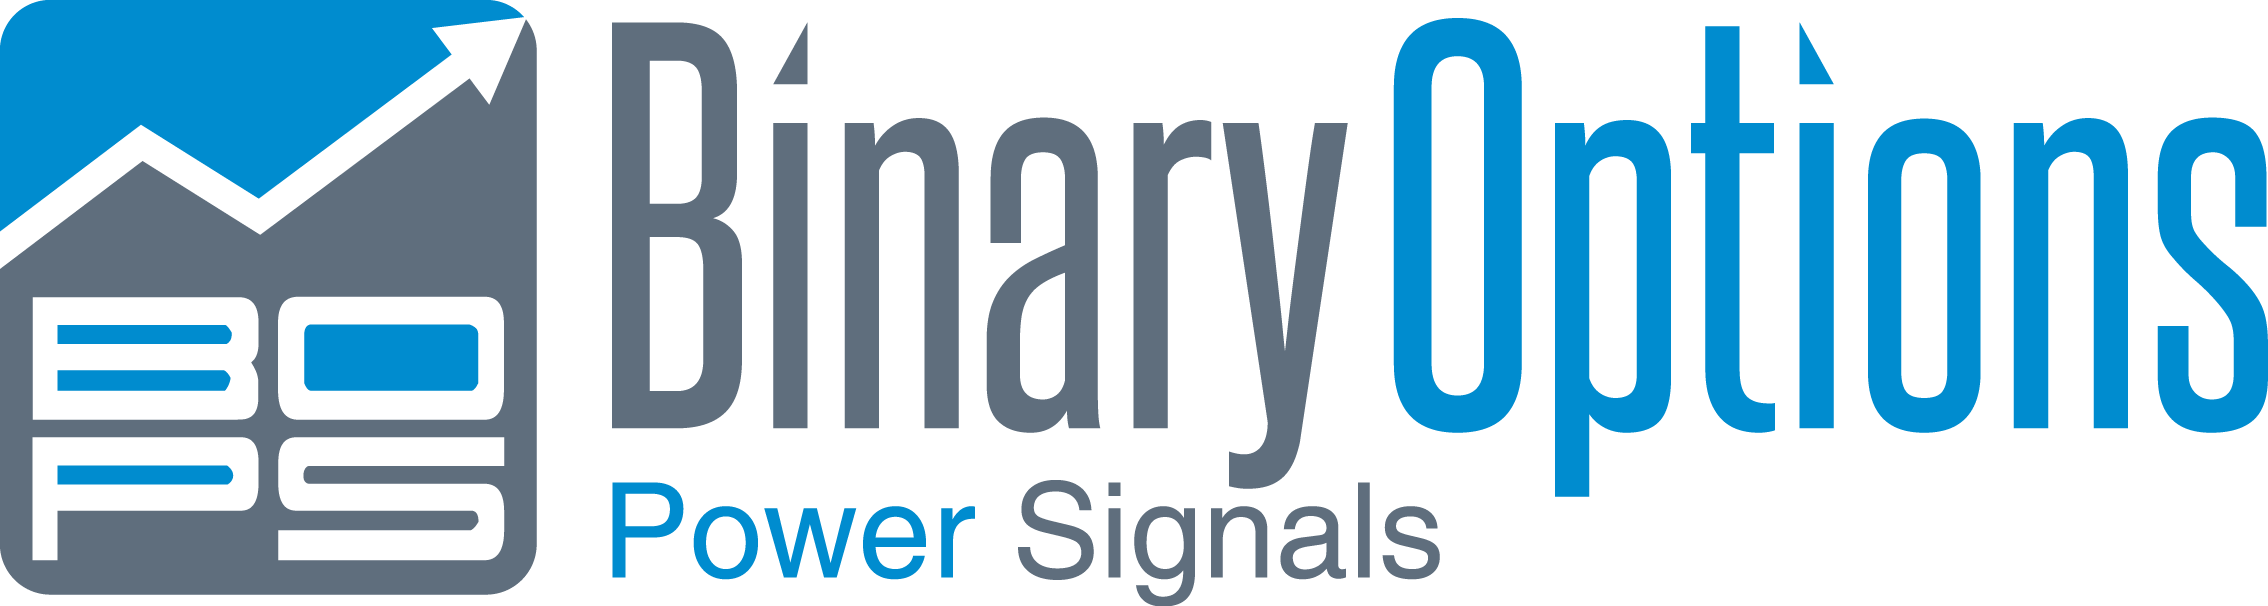 Binary trading electricity free options signals